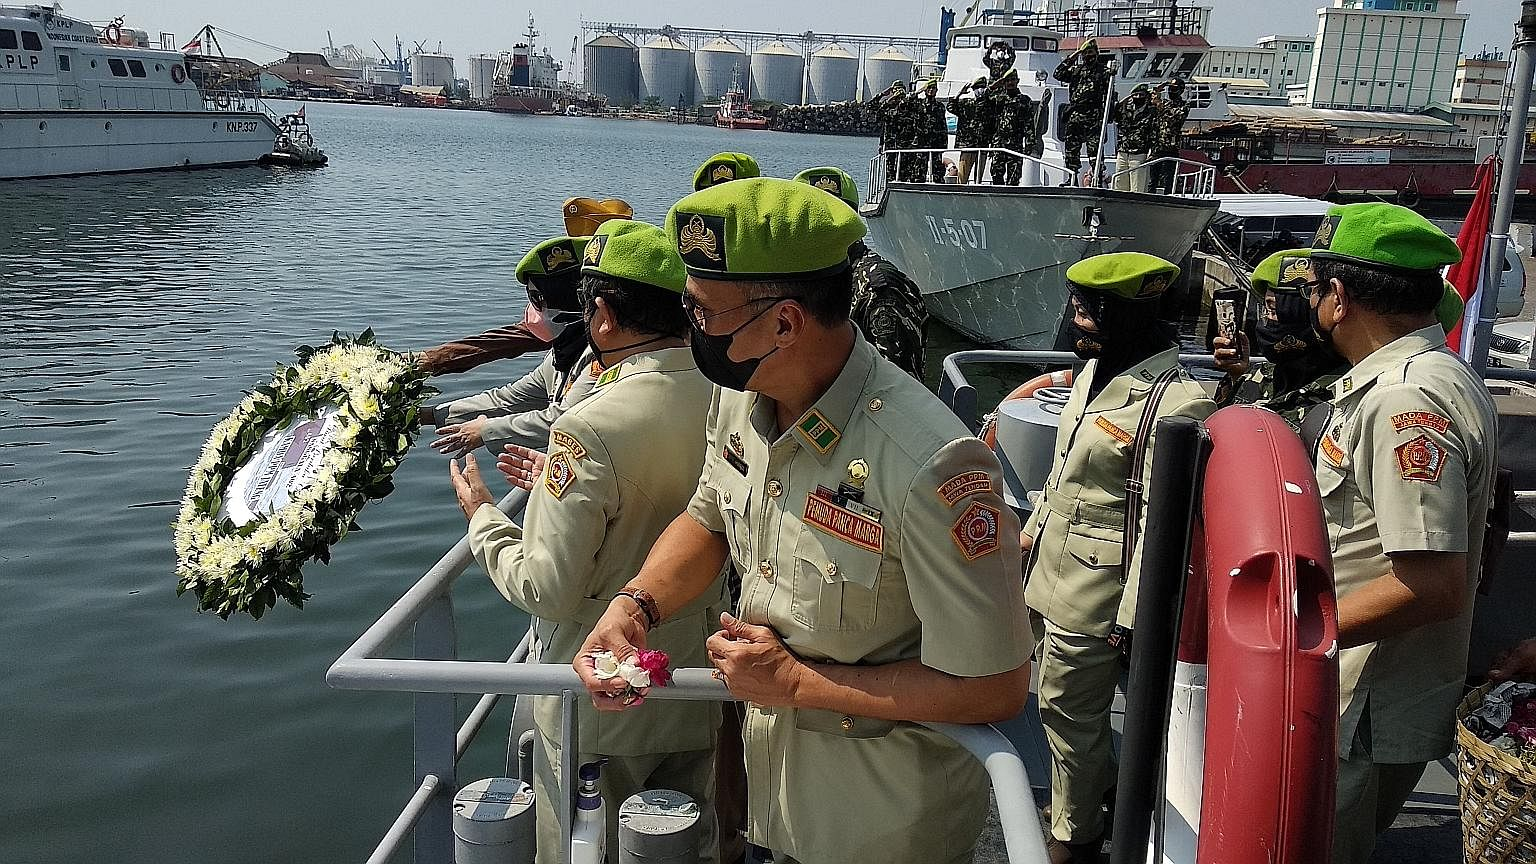 Indonesian naval officers throwing a garland into the sea at Semarang port yesterday as a sign of respect for the 53 crew members who were killed after their submarine sank off the coast of Bali last Wednesday. The navy is now looking at how best to